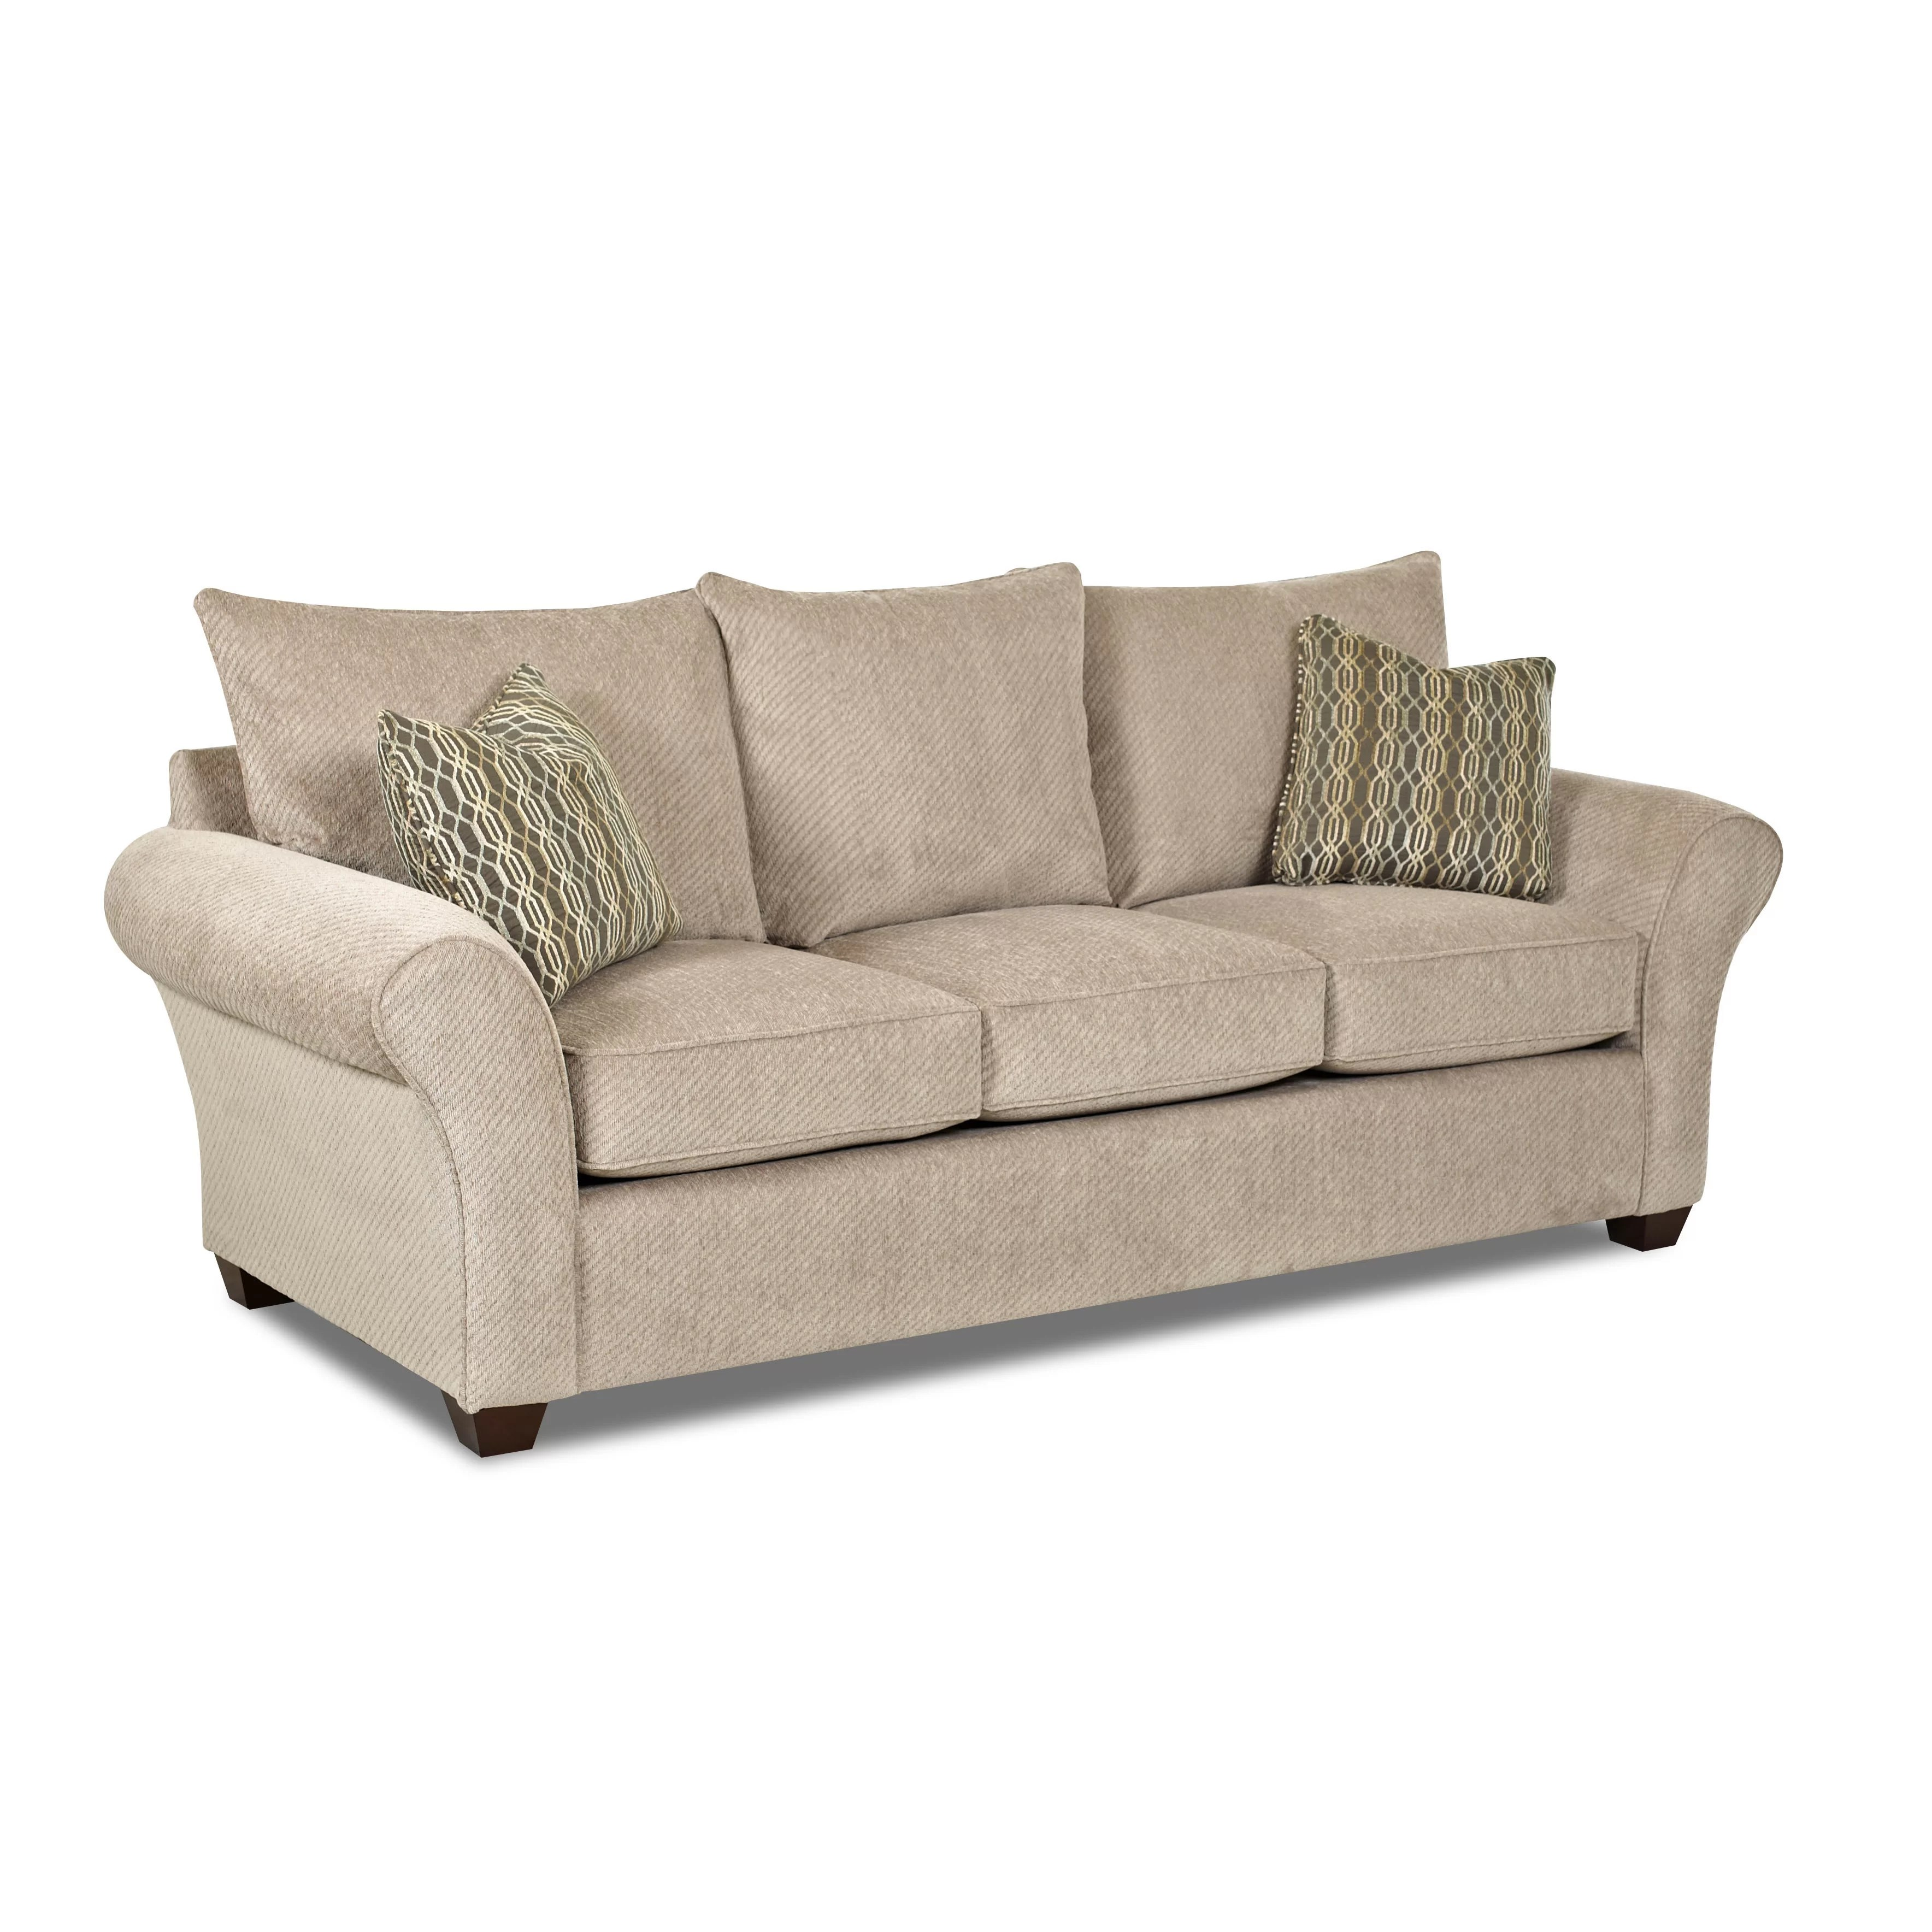 wayfair furniture sofa queen sleeper big lots klaussner finn and reviews